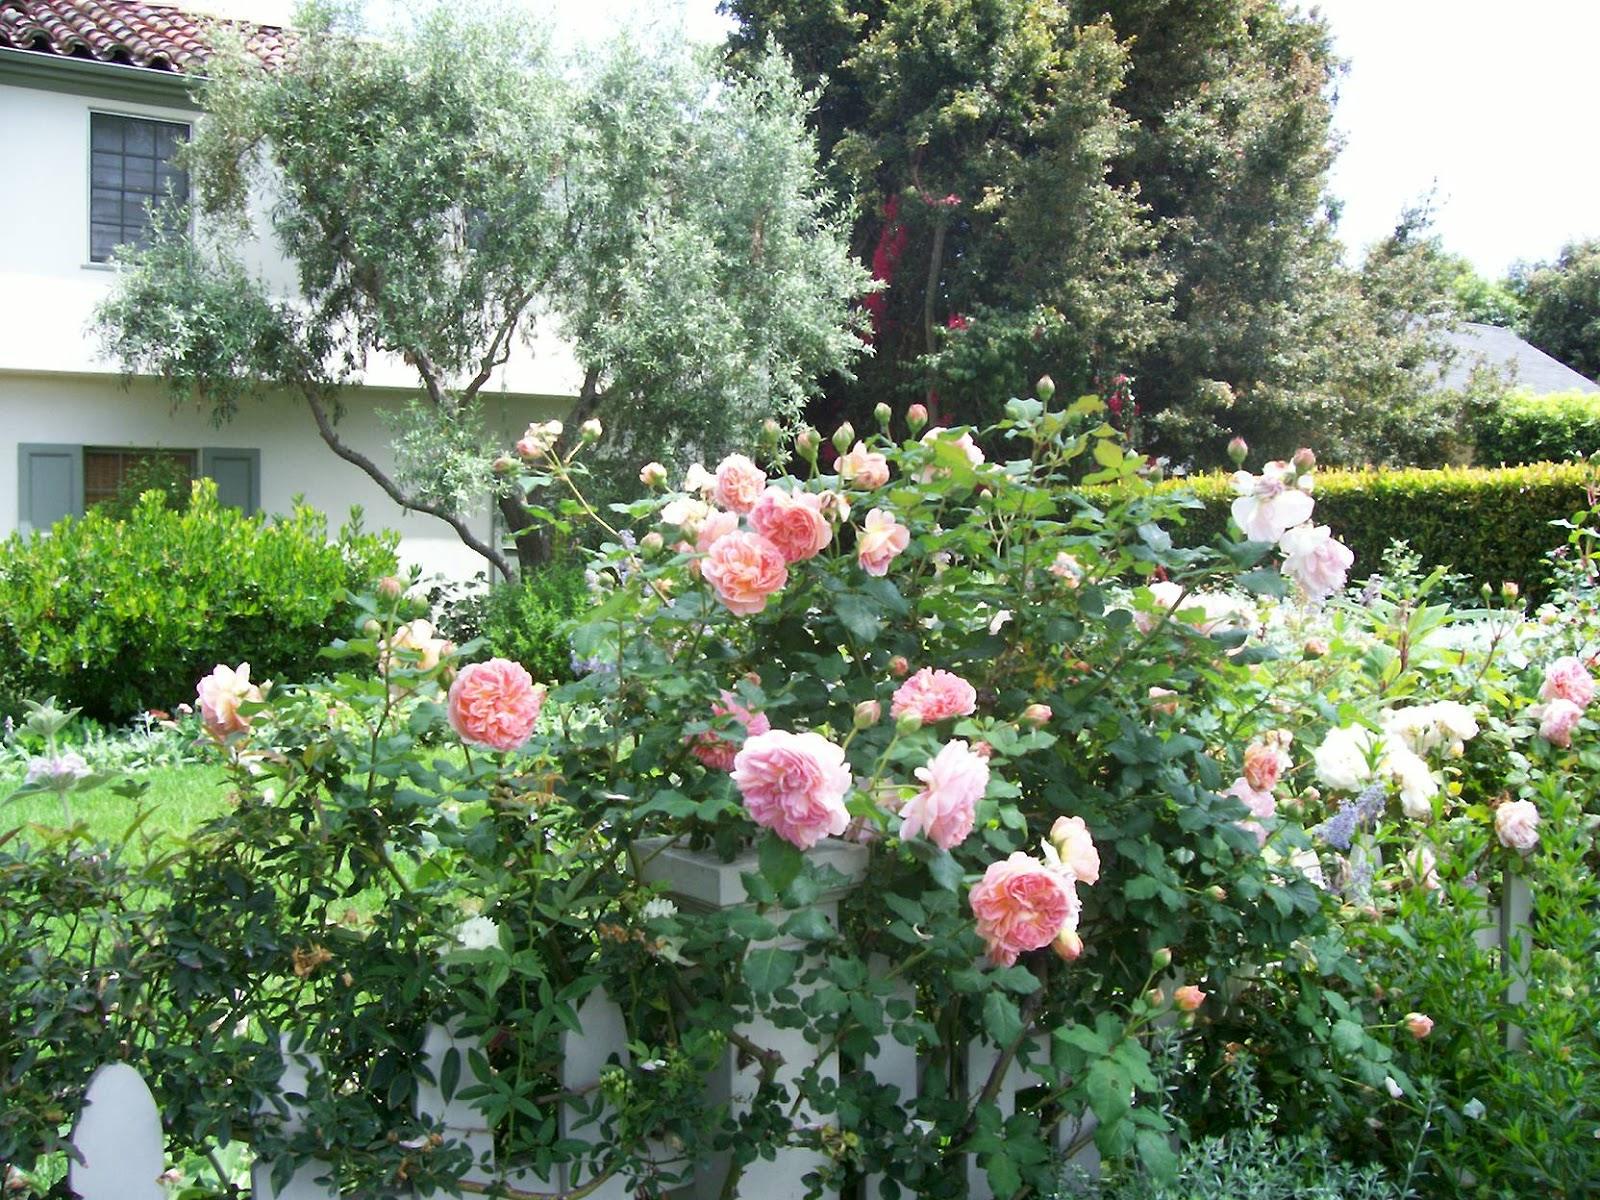 Cape Cod Rose Part - 26: One Of Taniau0027s Favorite Pink Roses Is The Cape Cod Variety. The Cape Cod  Rose Grows As A Shrub And Is Perfect To Integrate Into Your Garden  Landscape.